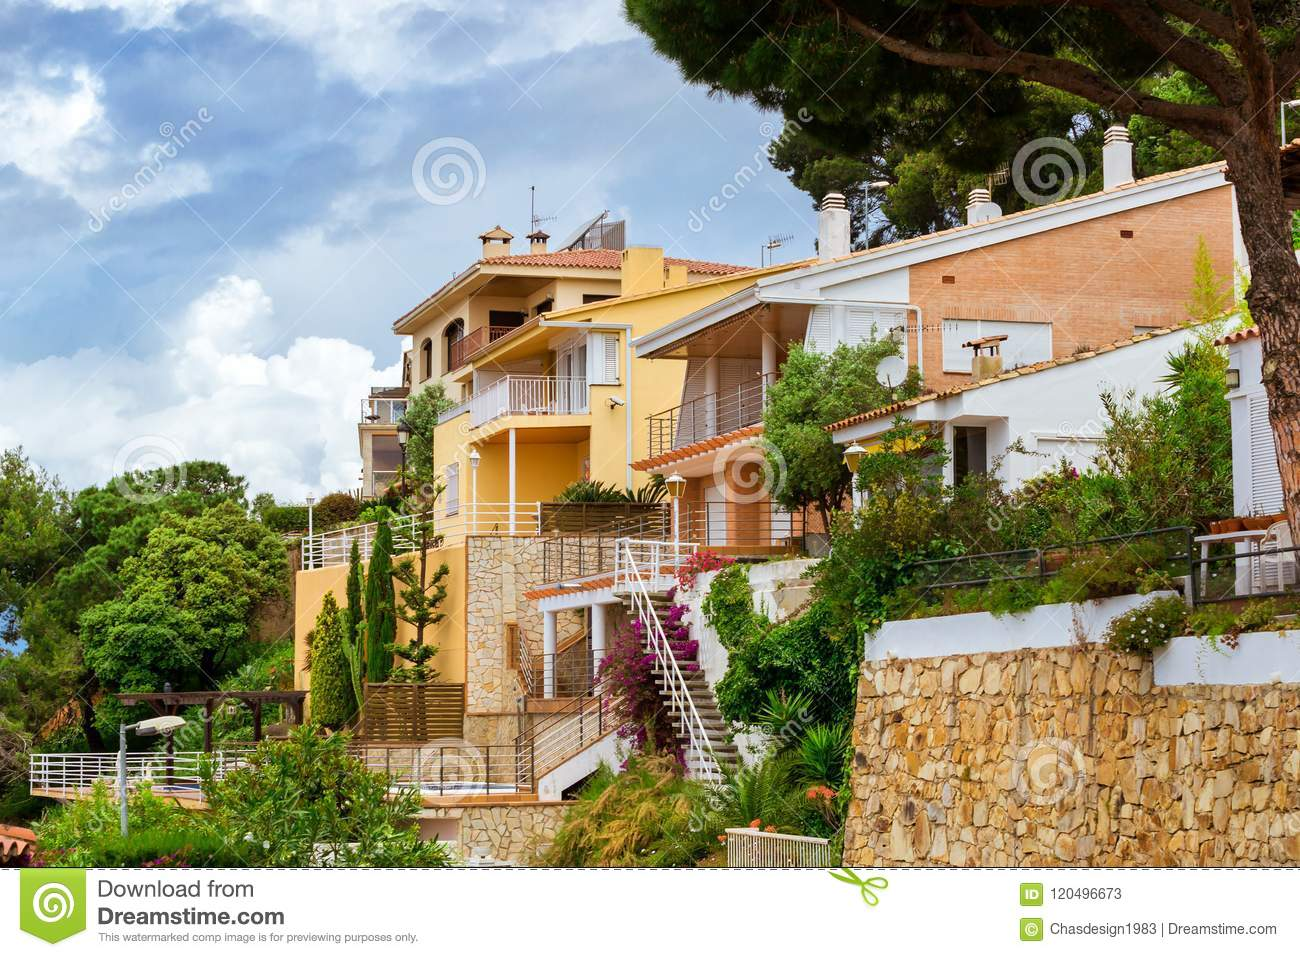 Villas In Spanish Resort Style Blanes Catalonia Stock Image Image Of Climb Plants 120496673